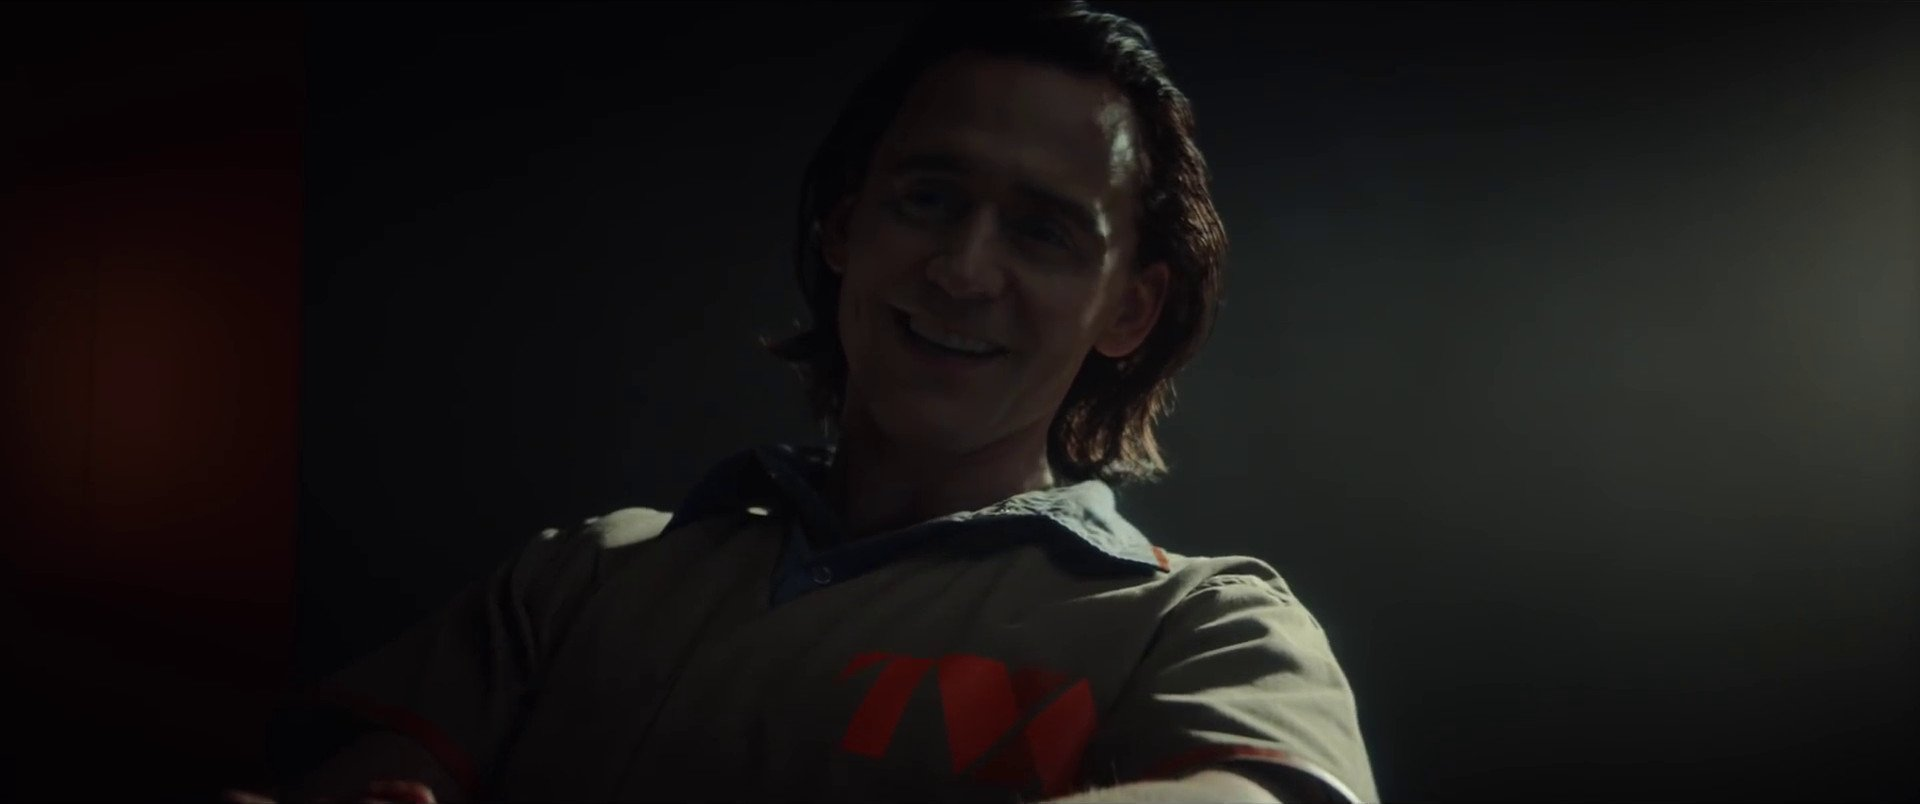 Photo de la série Marvel Studios, Loki, issue du spot pour le Super Bowl 2020 où Tom Hiddleston porte un costume TVA